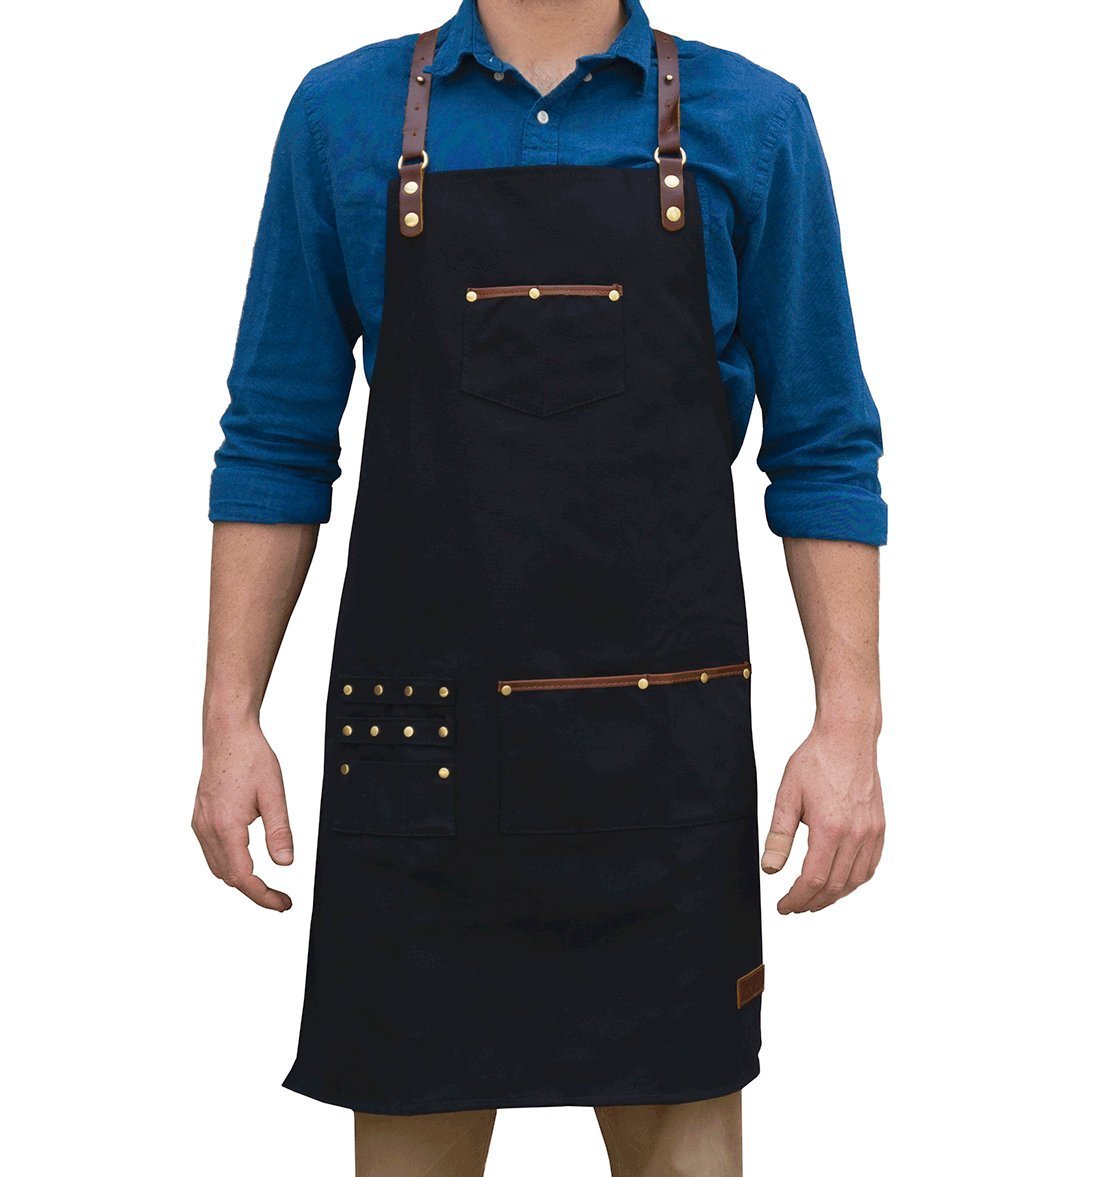 Waterproof Canvas Professional Apron - Barbers / Baristas / Artists - Genuine Leather Straps - ApronMen Premium Black Work Apron with Slot Pockets for Scissors & Tools - Comfort Fit Back Straps by ApronMen